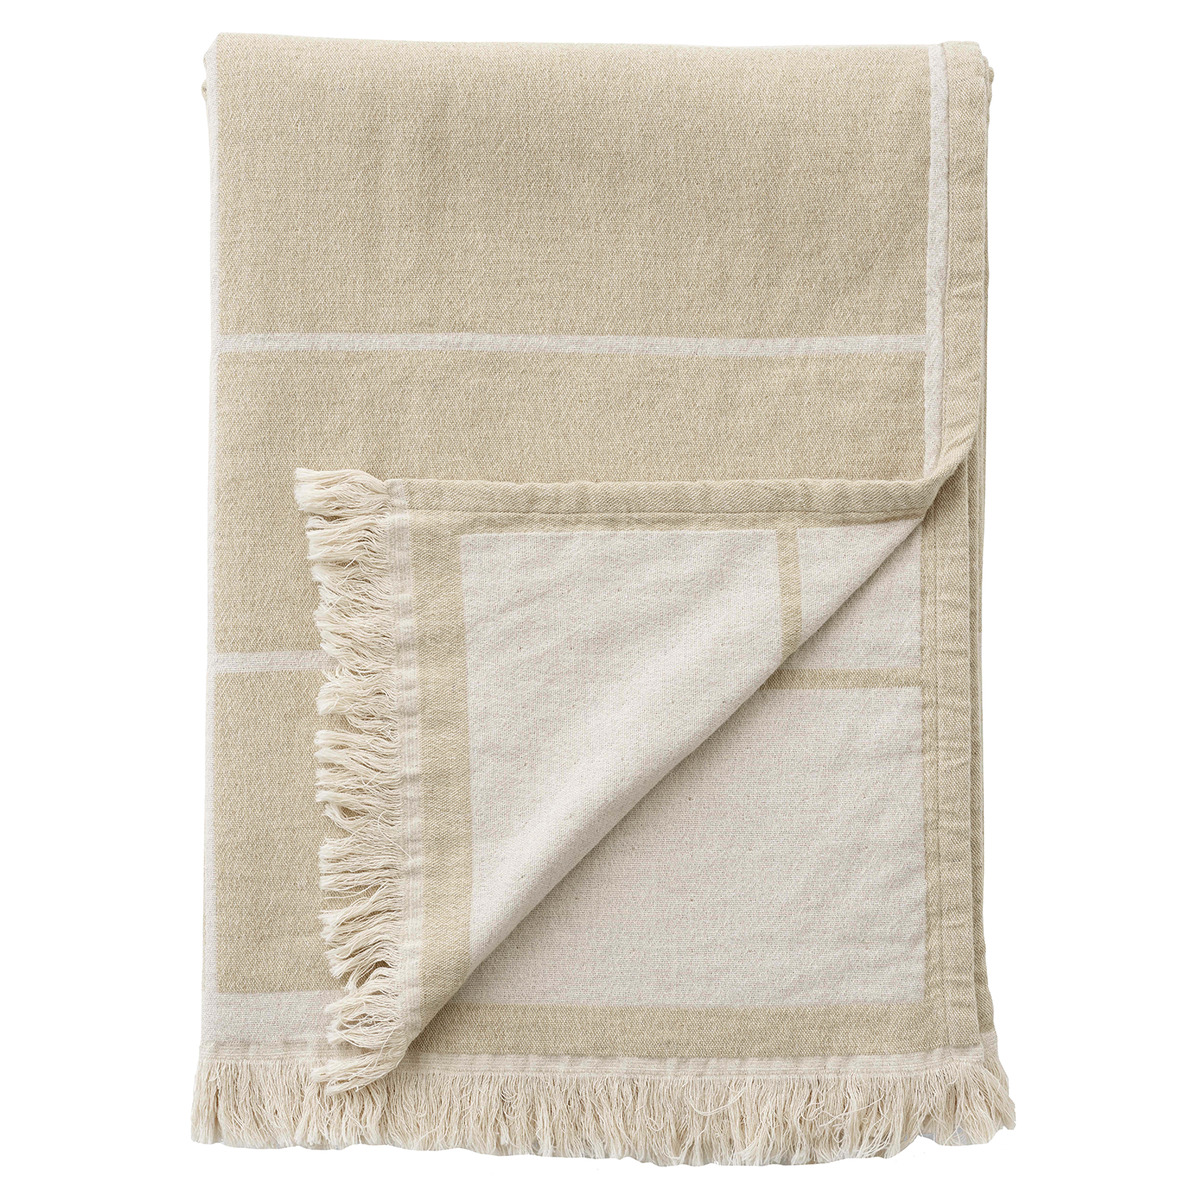 &Tradition Untitled AP10 throw, 150 x 200 cm, light beige from &Tradition